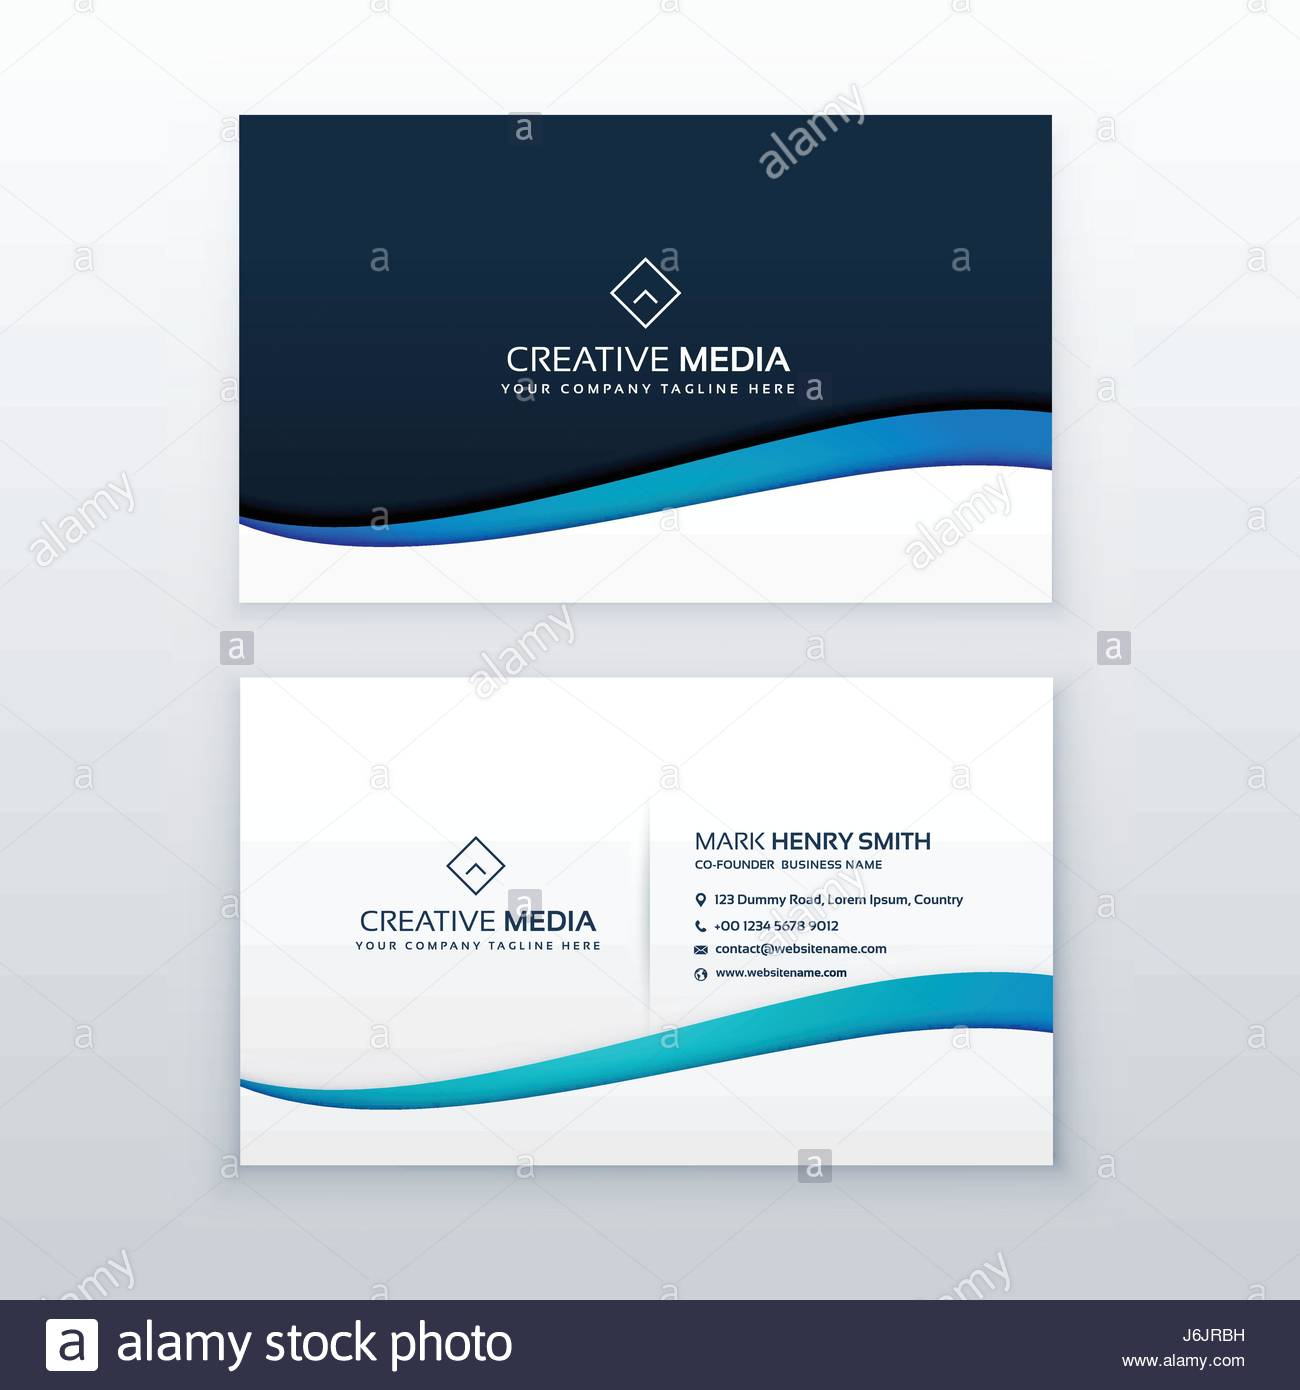 Clean blue wave business card design template stock vector art clean blue wave business card design template wajeb Gallery